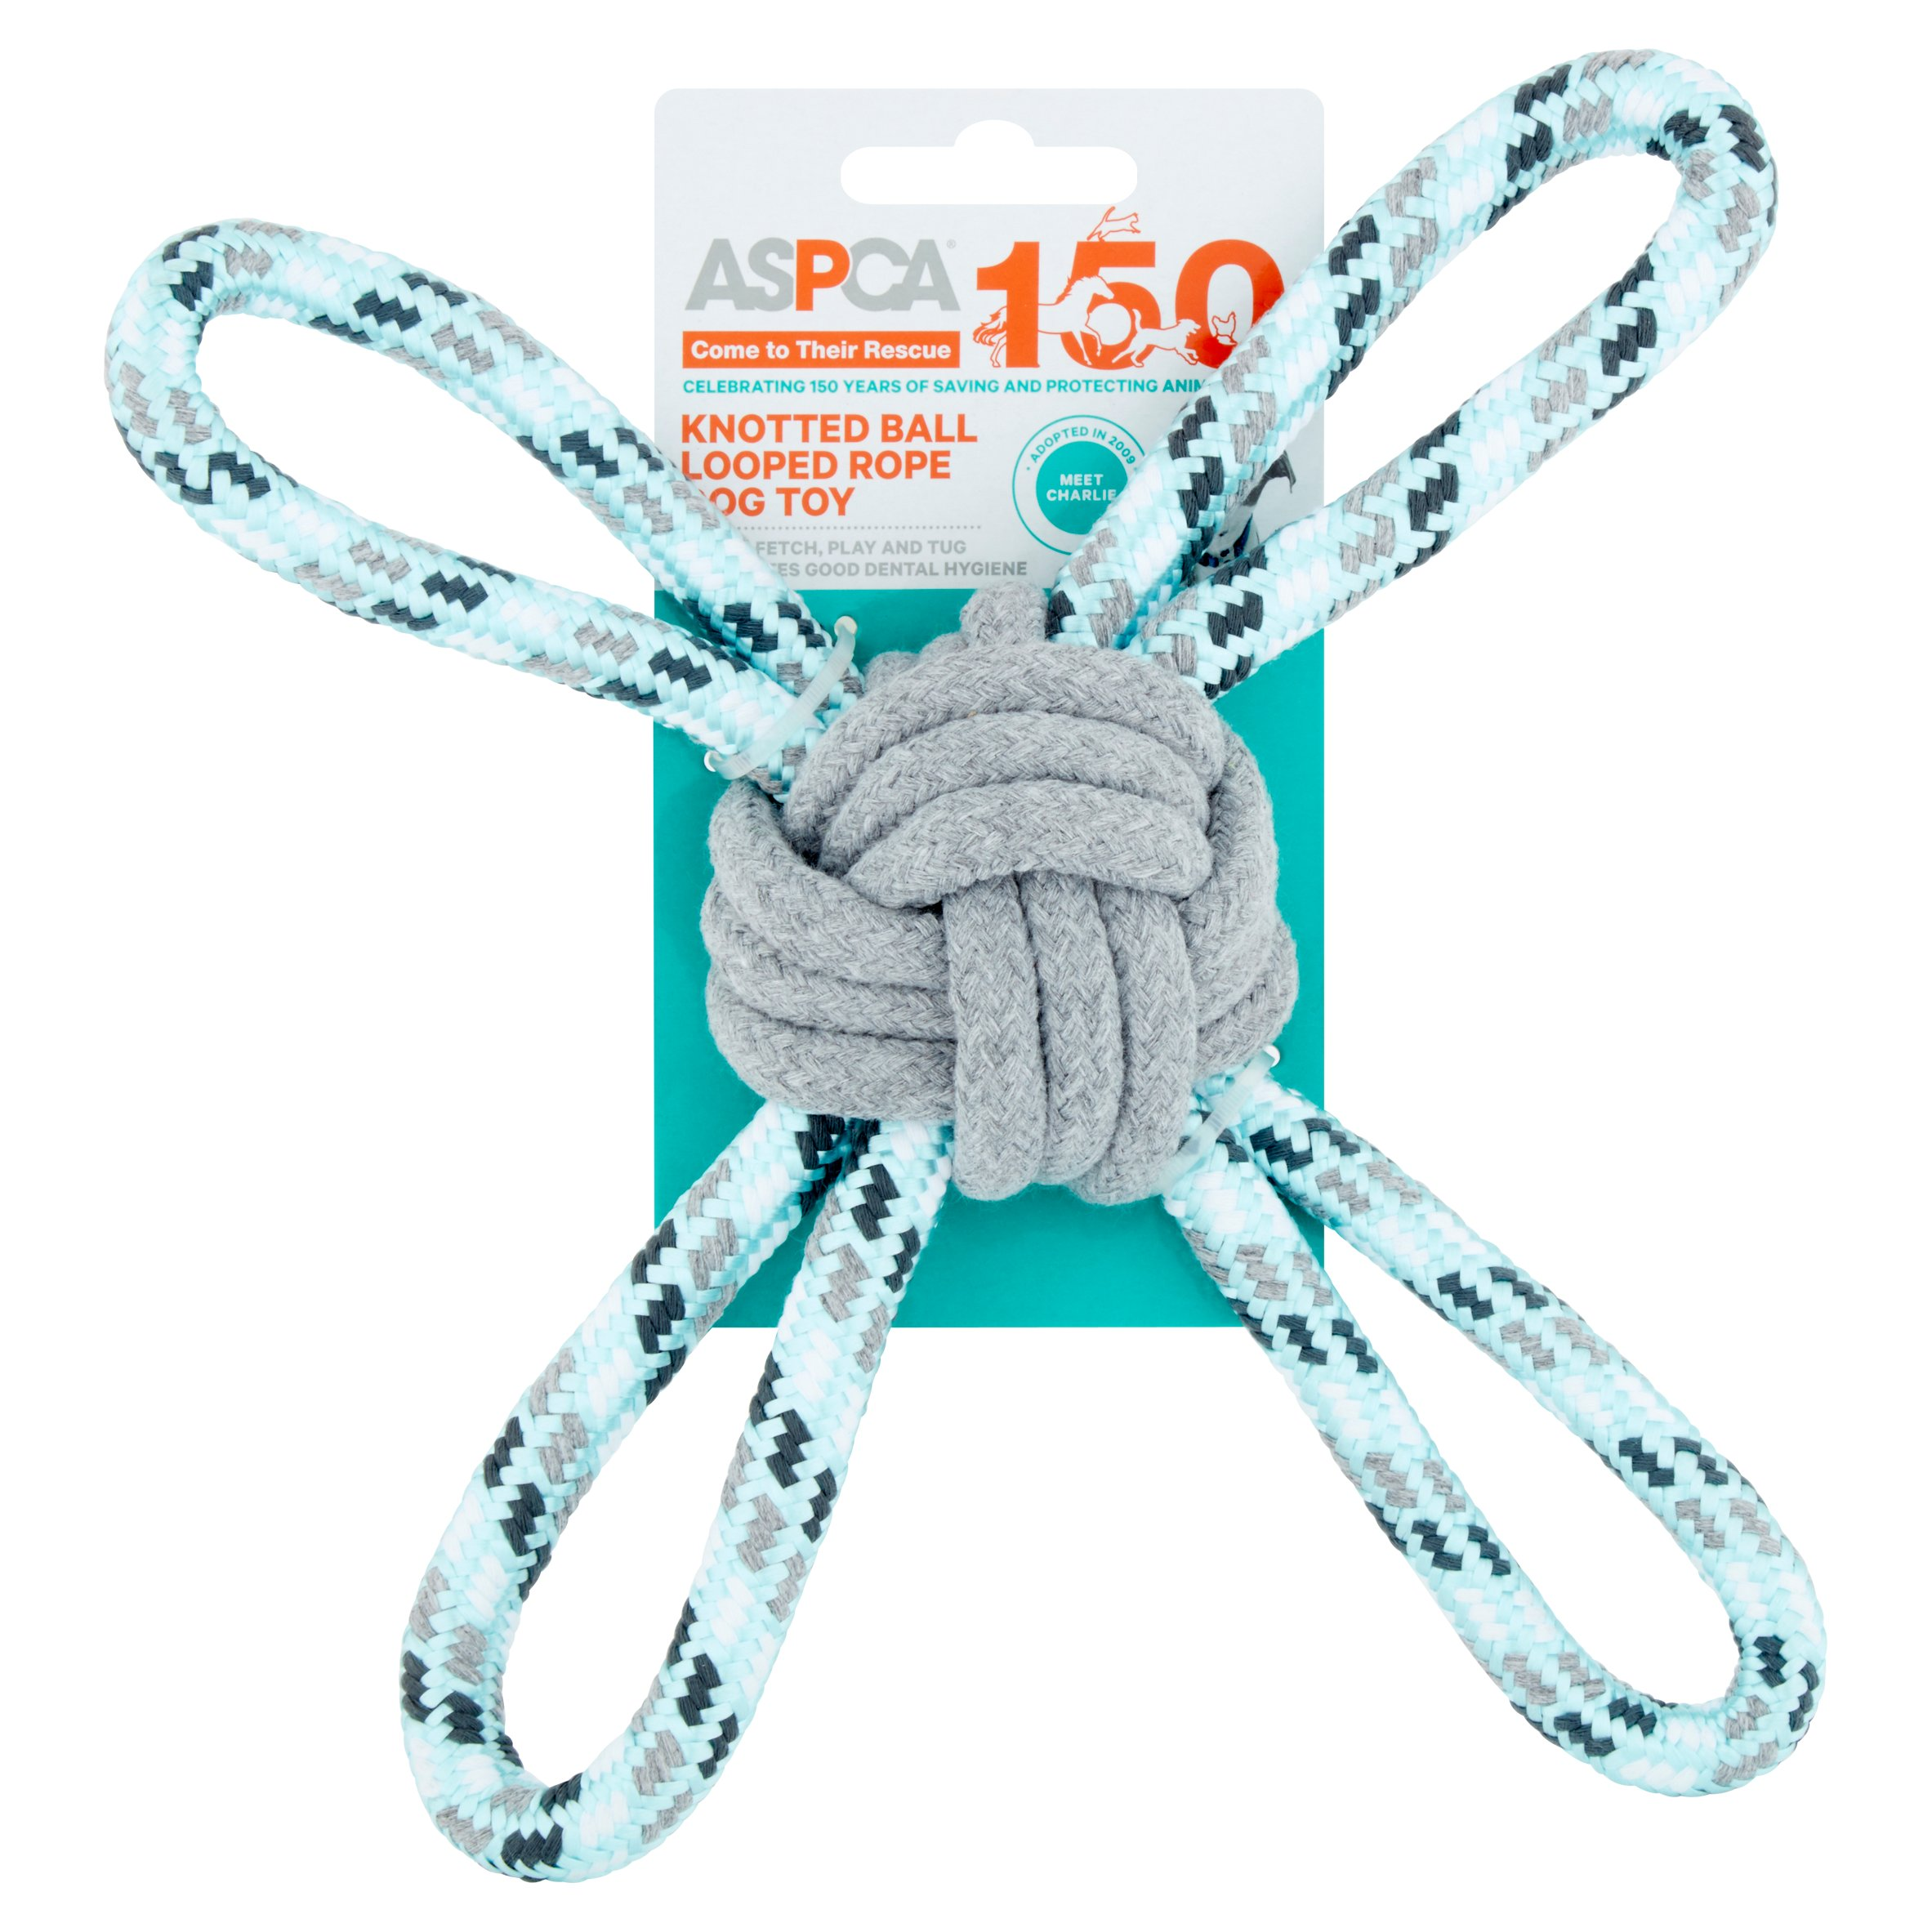 ASPCA Blue Knotted Ball Looped Rope Dog Toy